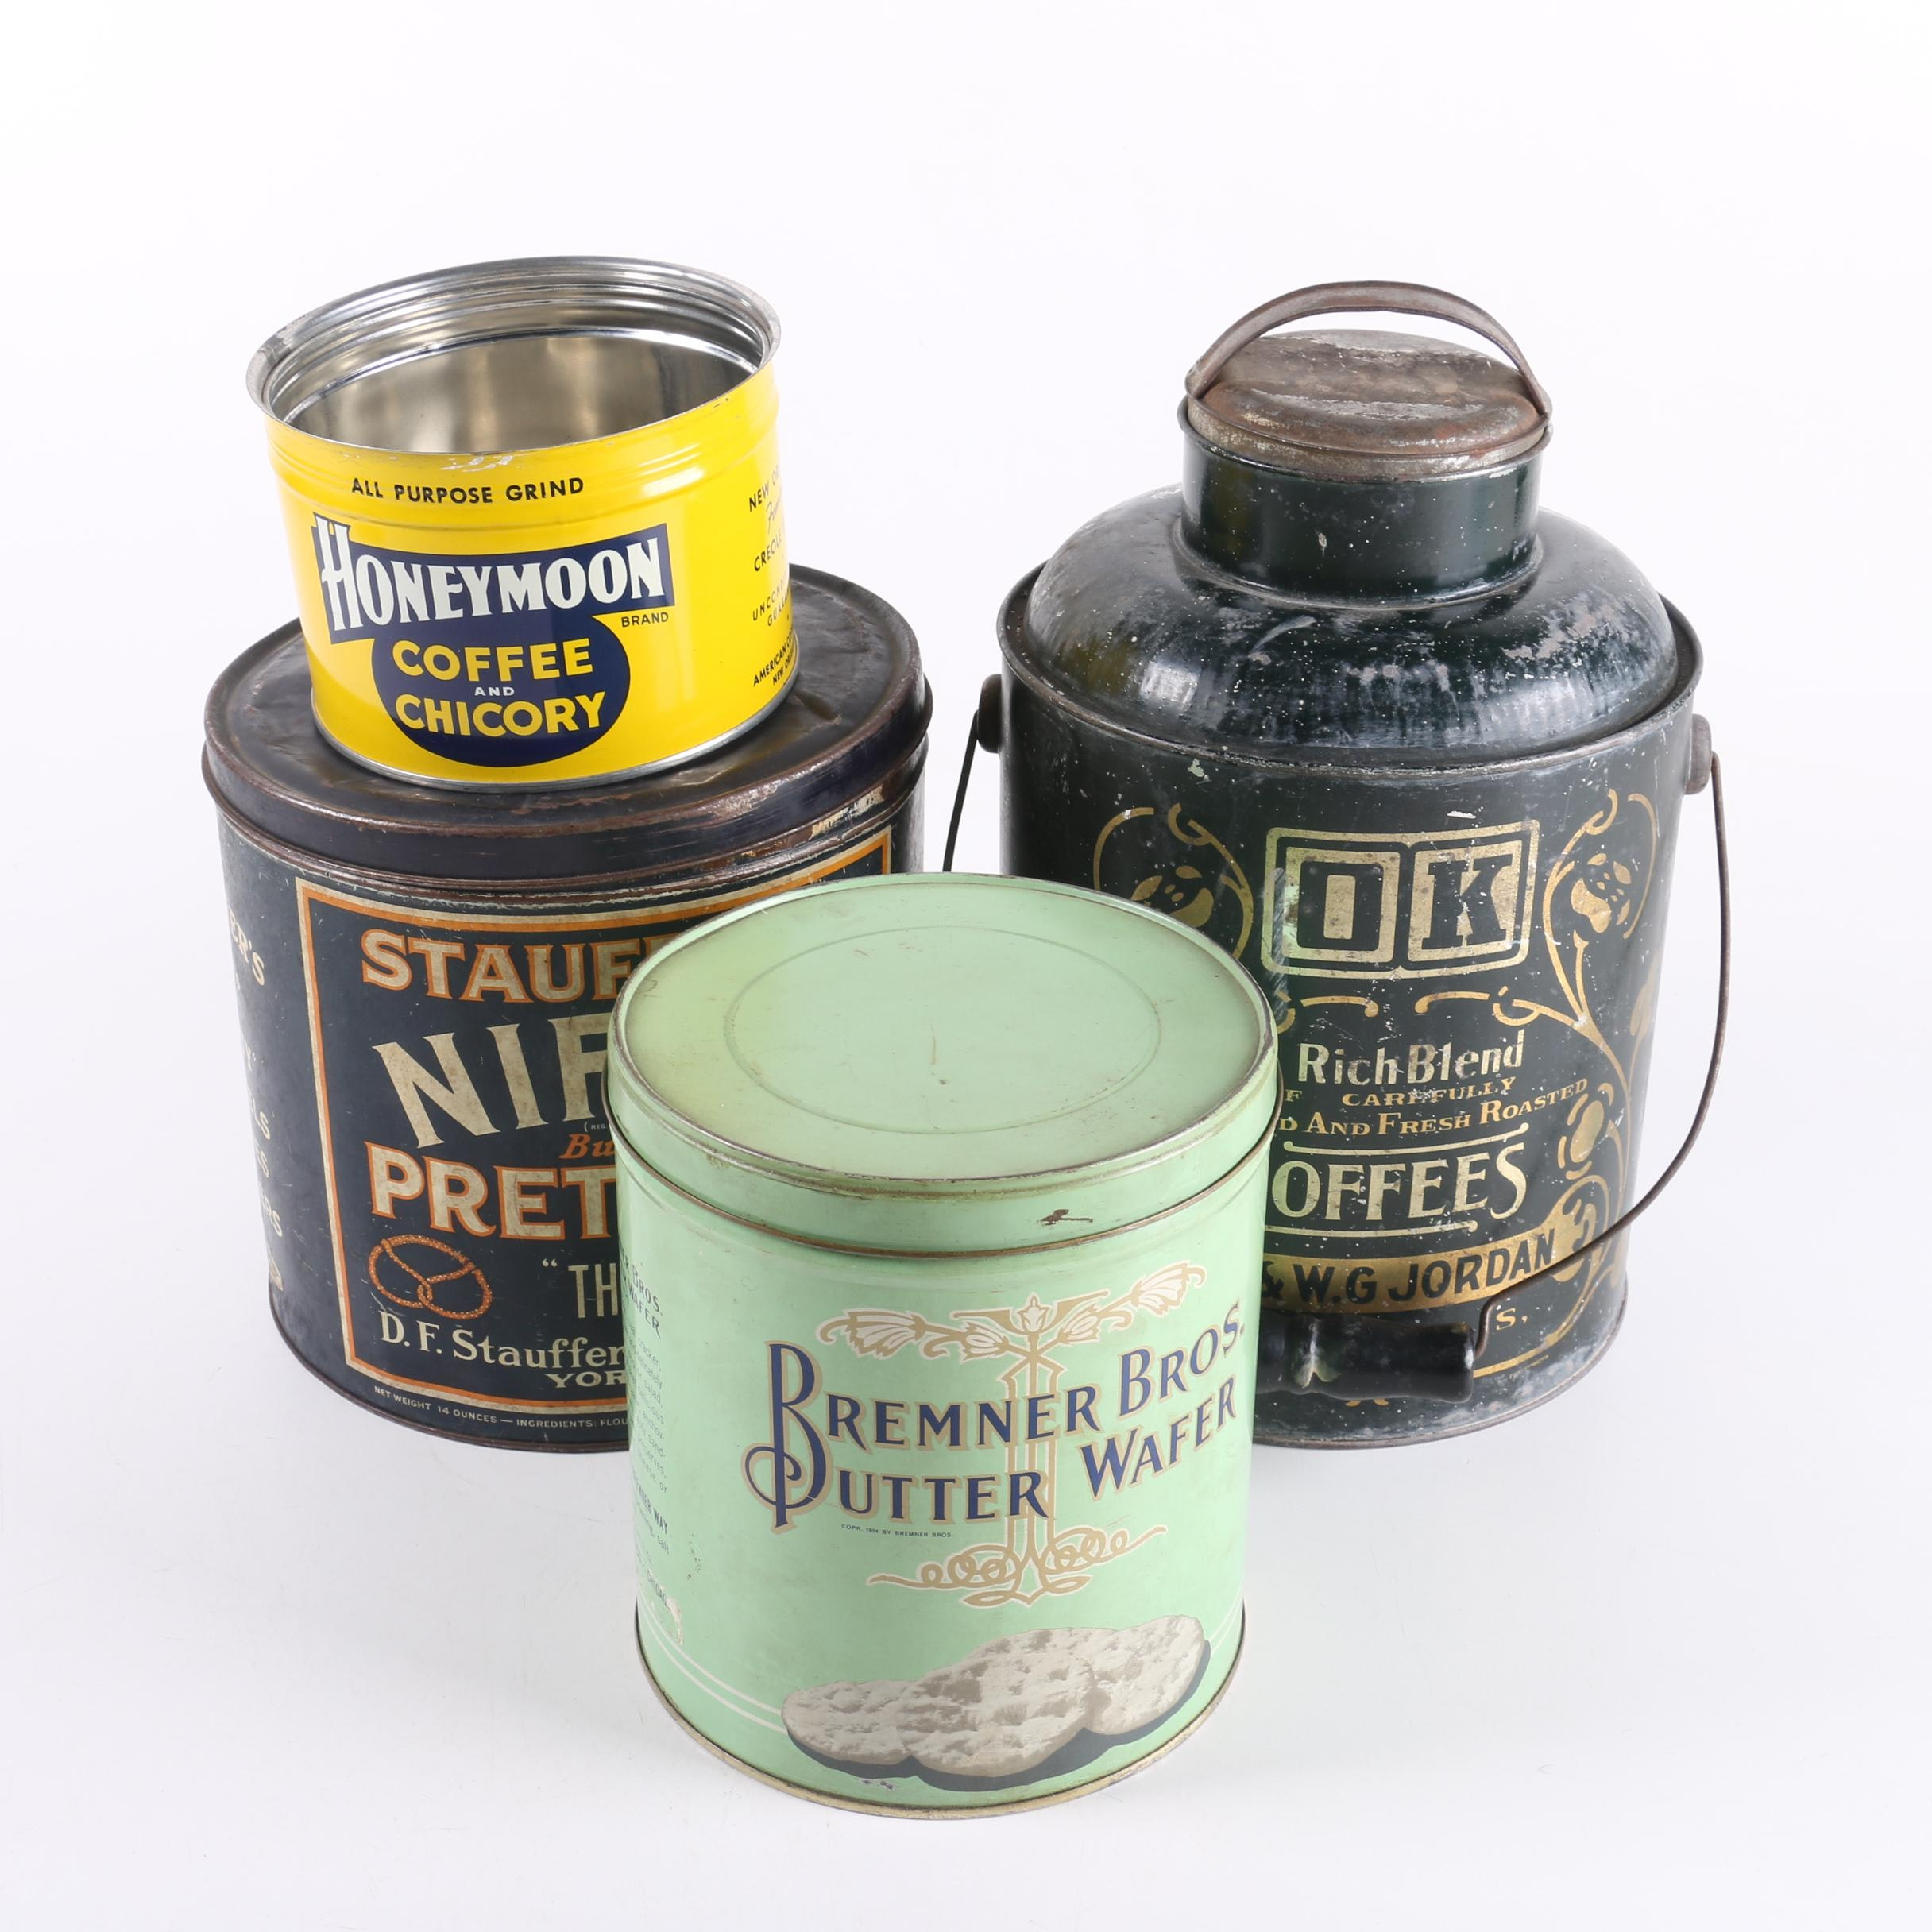 Honeymoon OK and Other Vintage Coffee and Food Tins